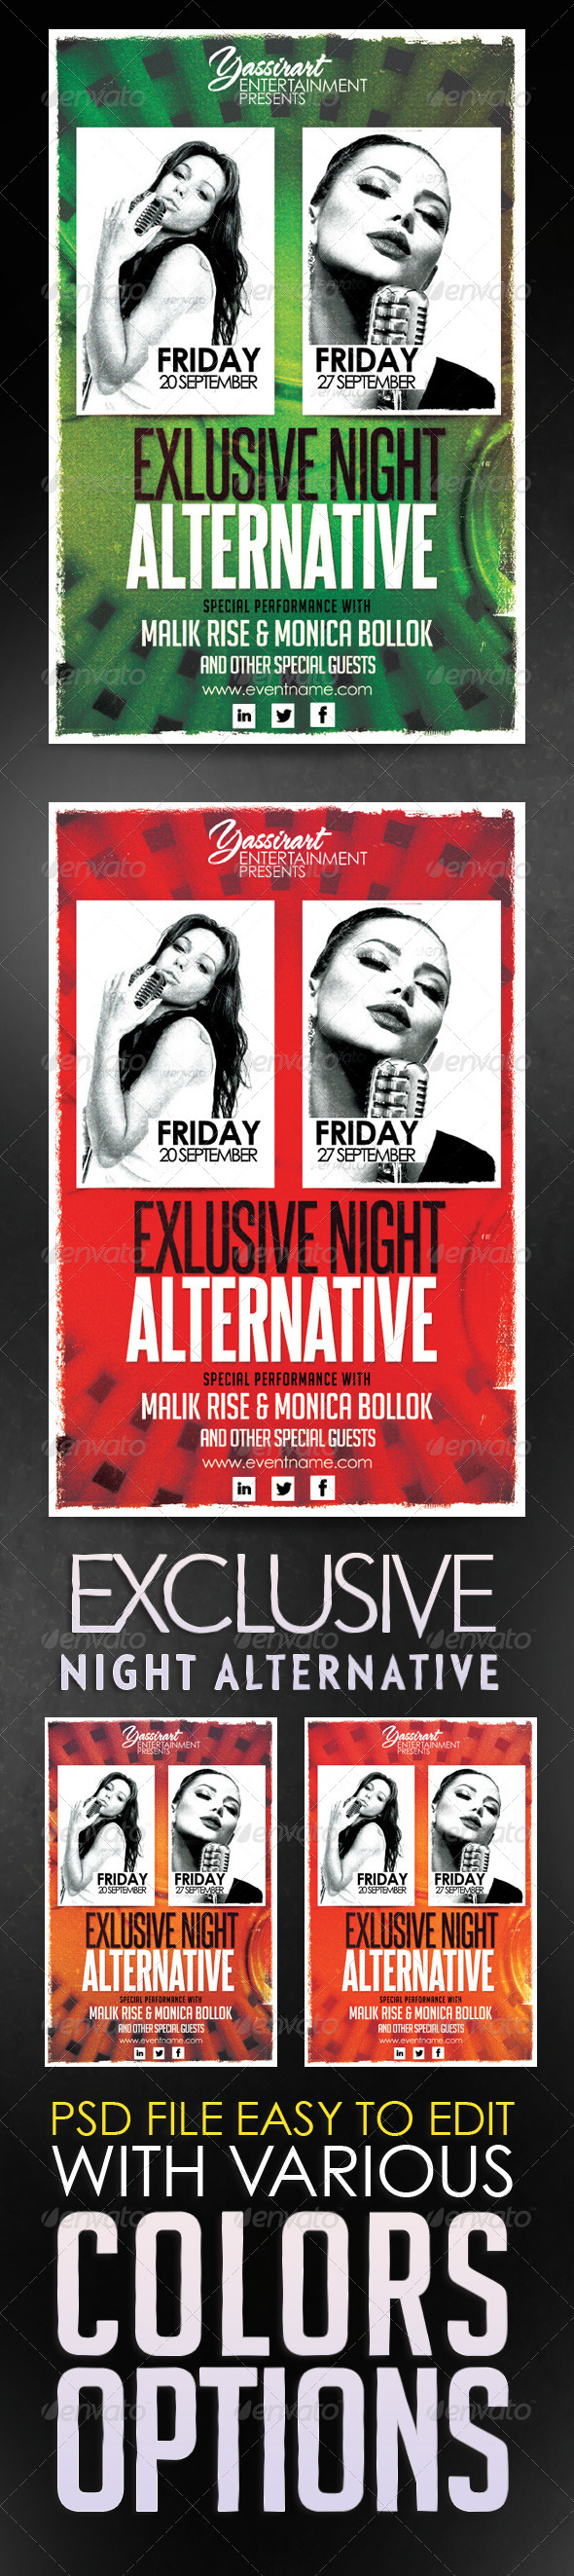 GraphicRiver Exclusive Night Alternative Flyer 5732700